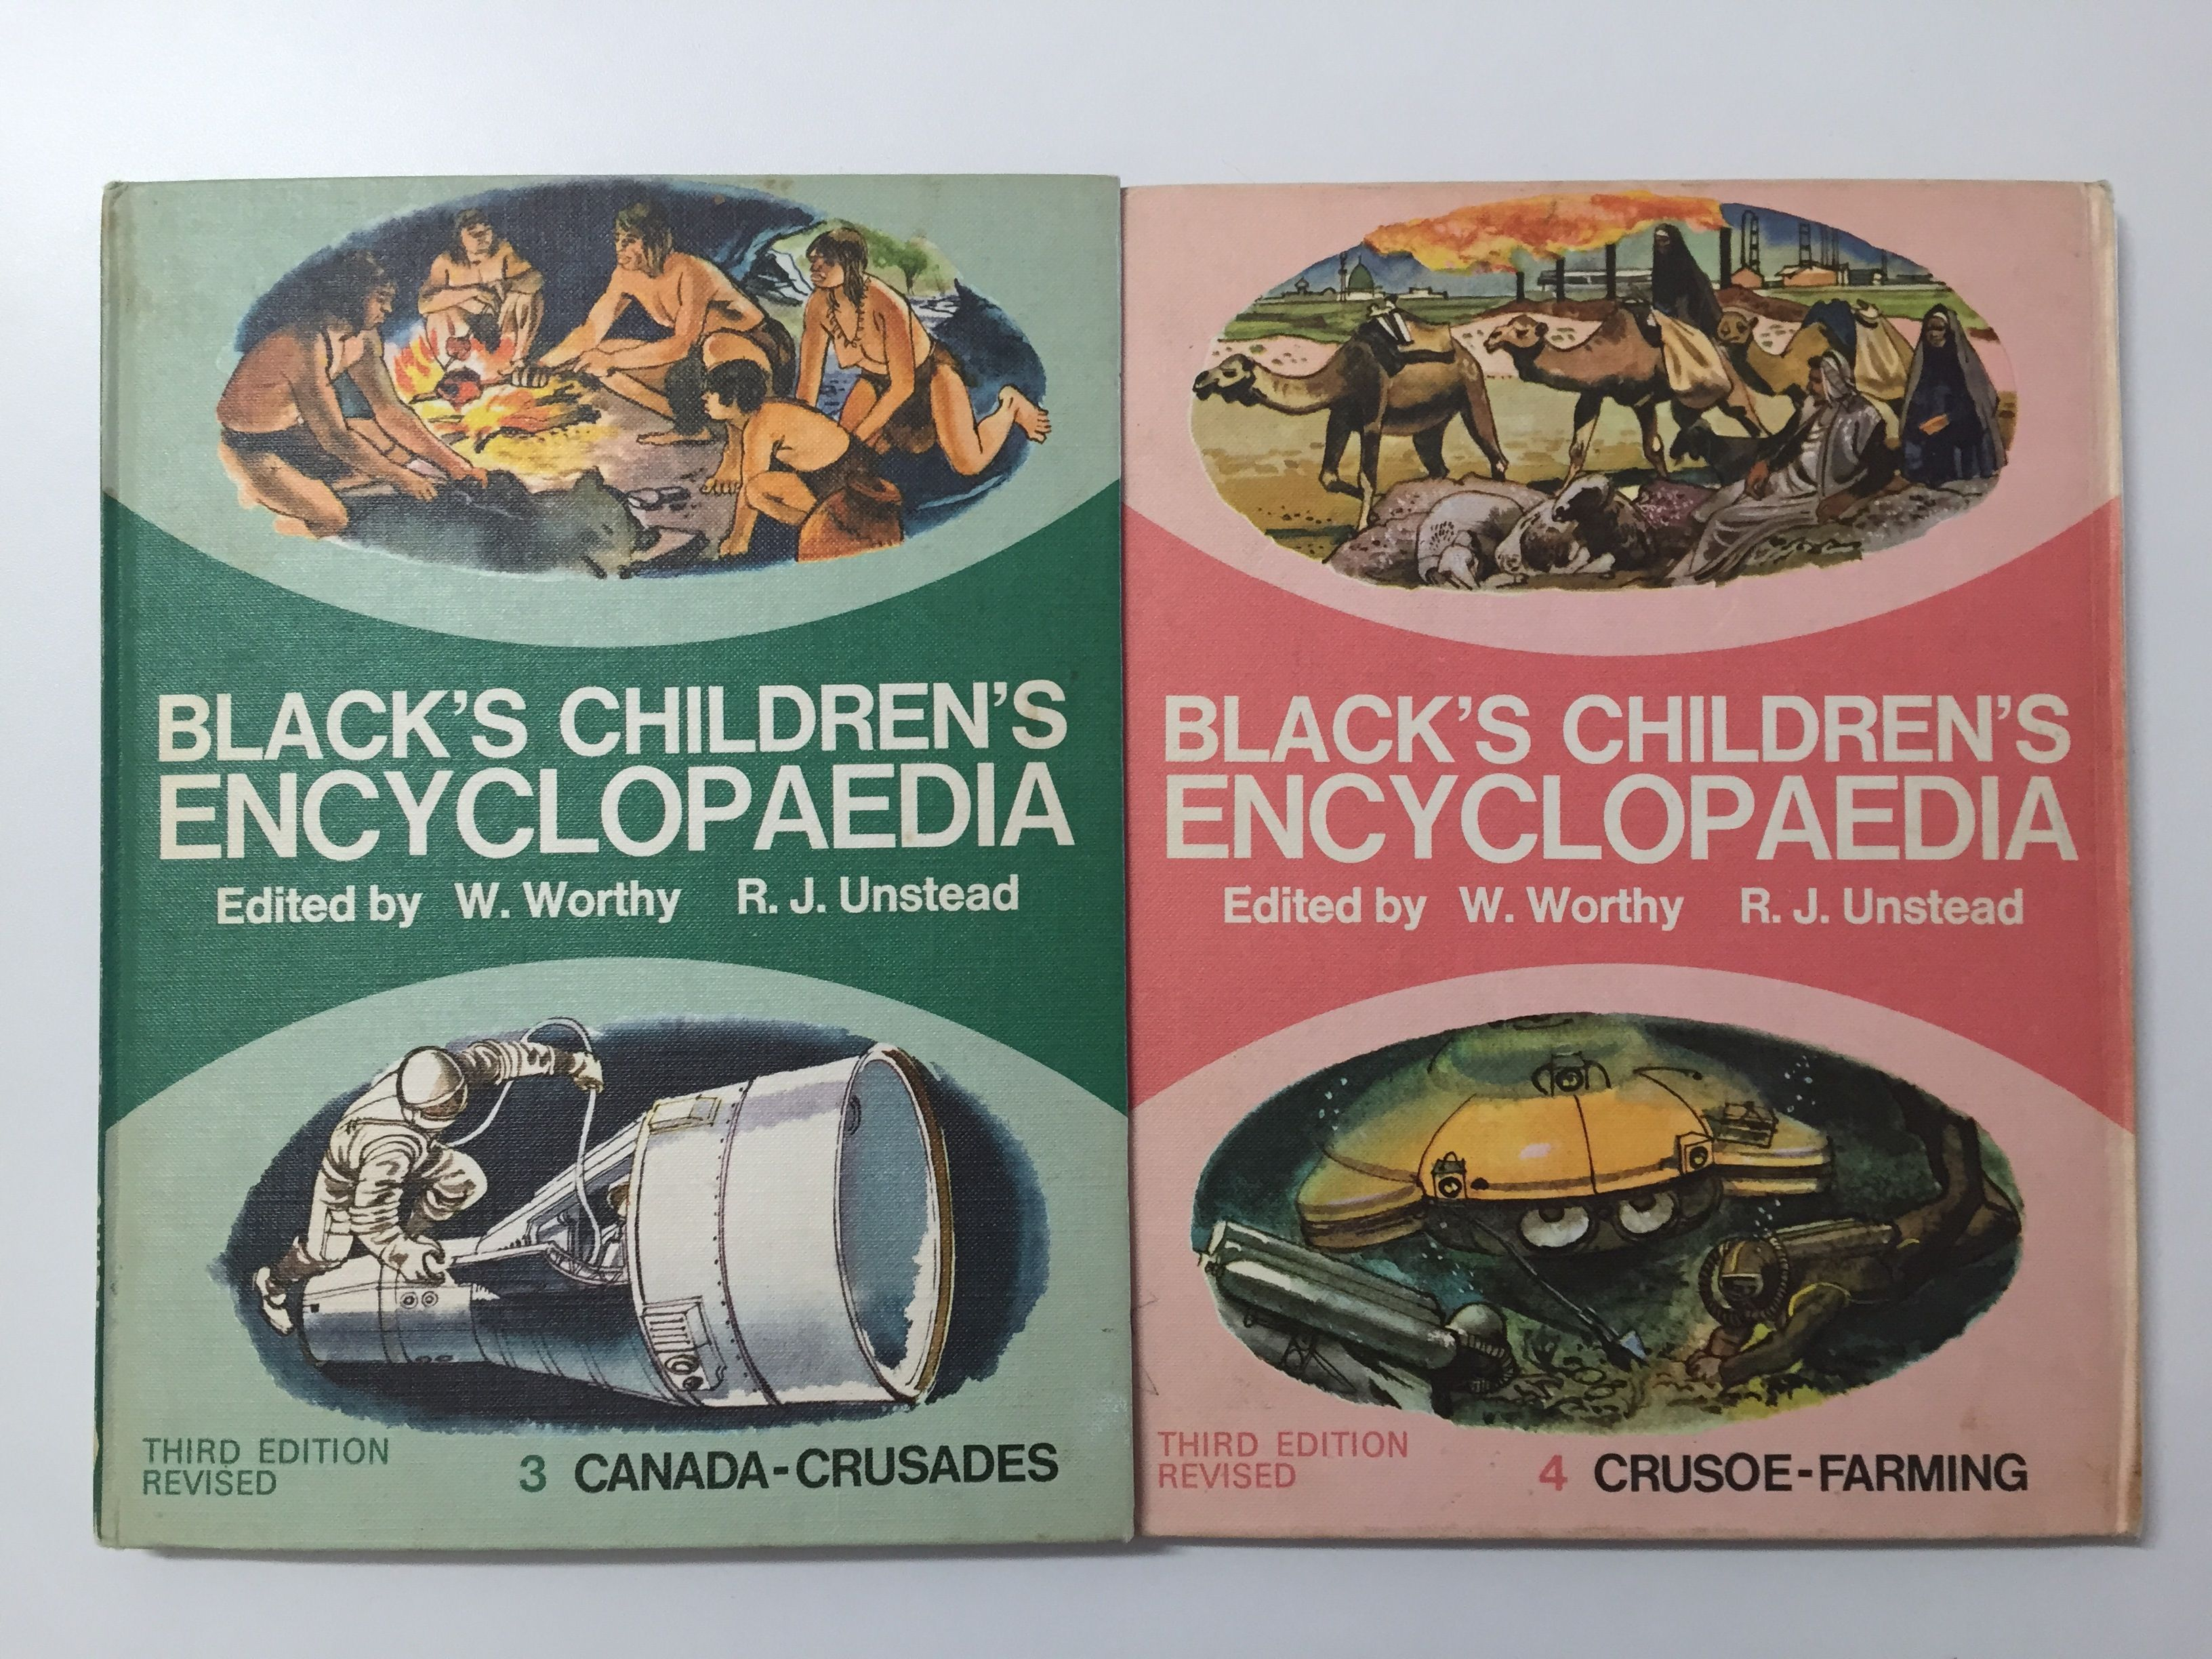 Two volumes of the wonderfully illustrated Black's Children's Encyclopaedia from 1973.